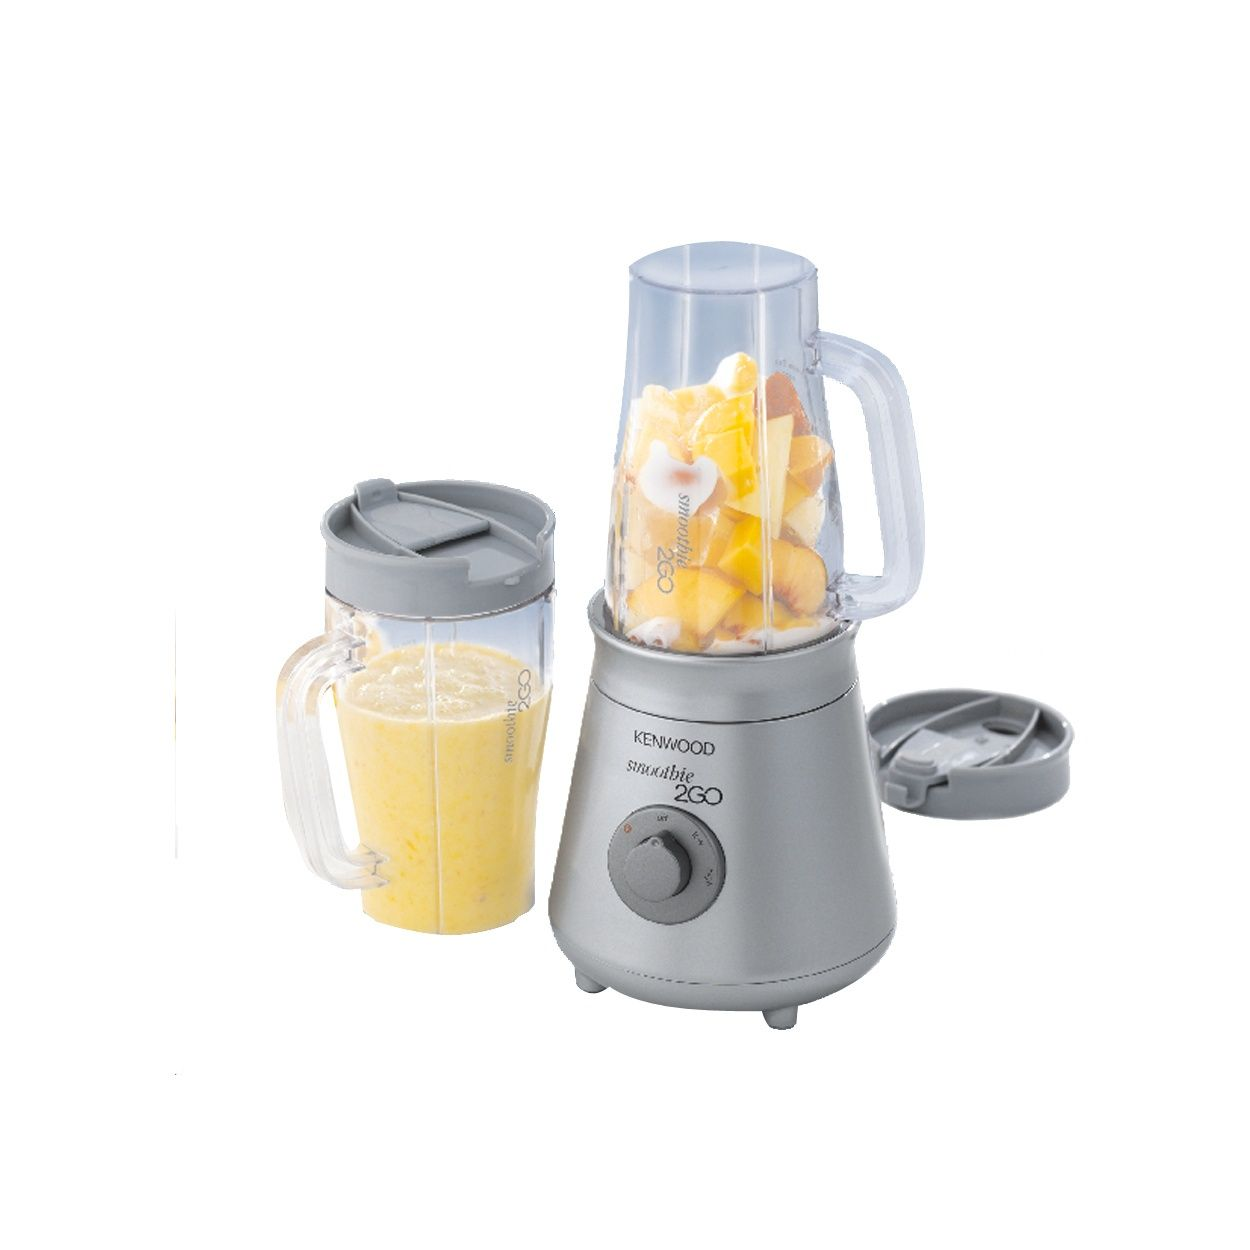 Kenwood Kenwood 'Smoothie To Go' SB055 Silver blender- at Debenhams ...